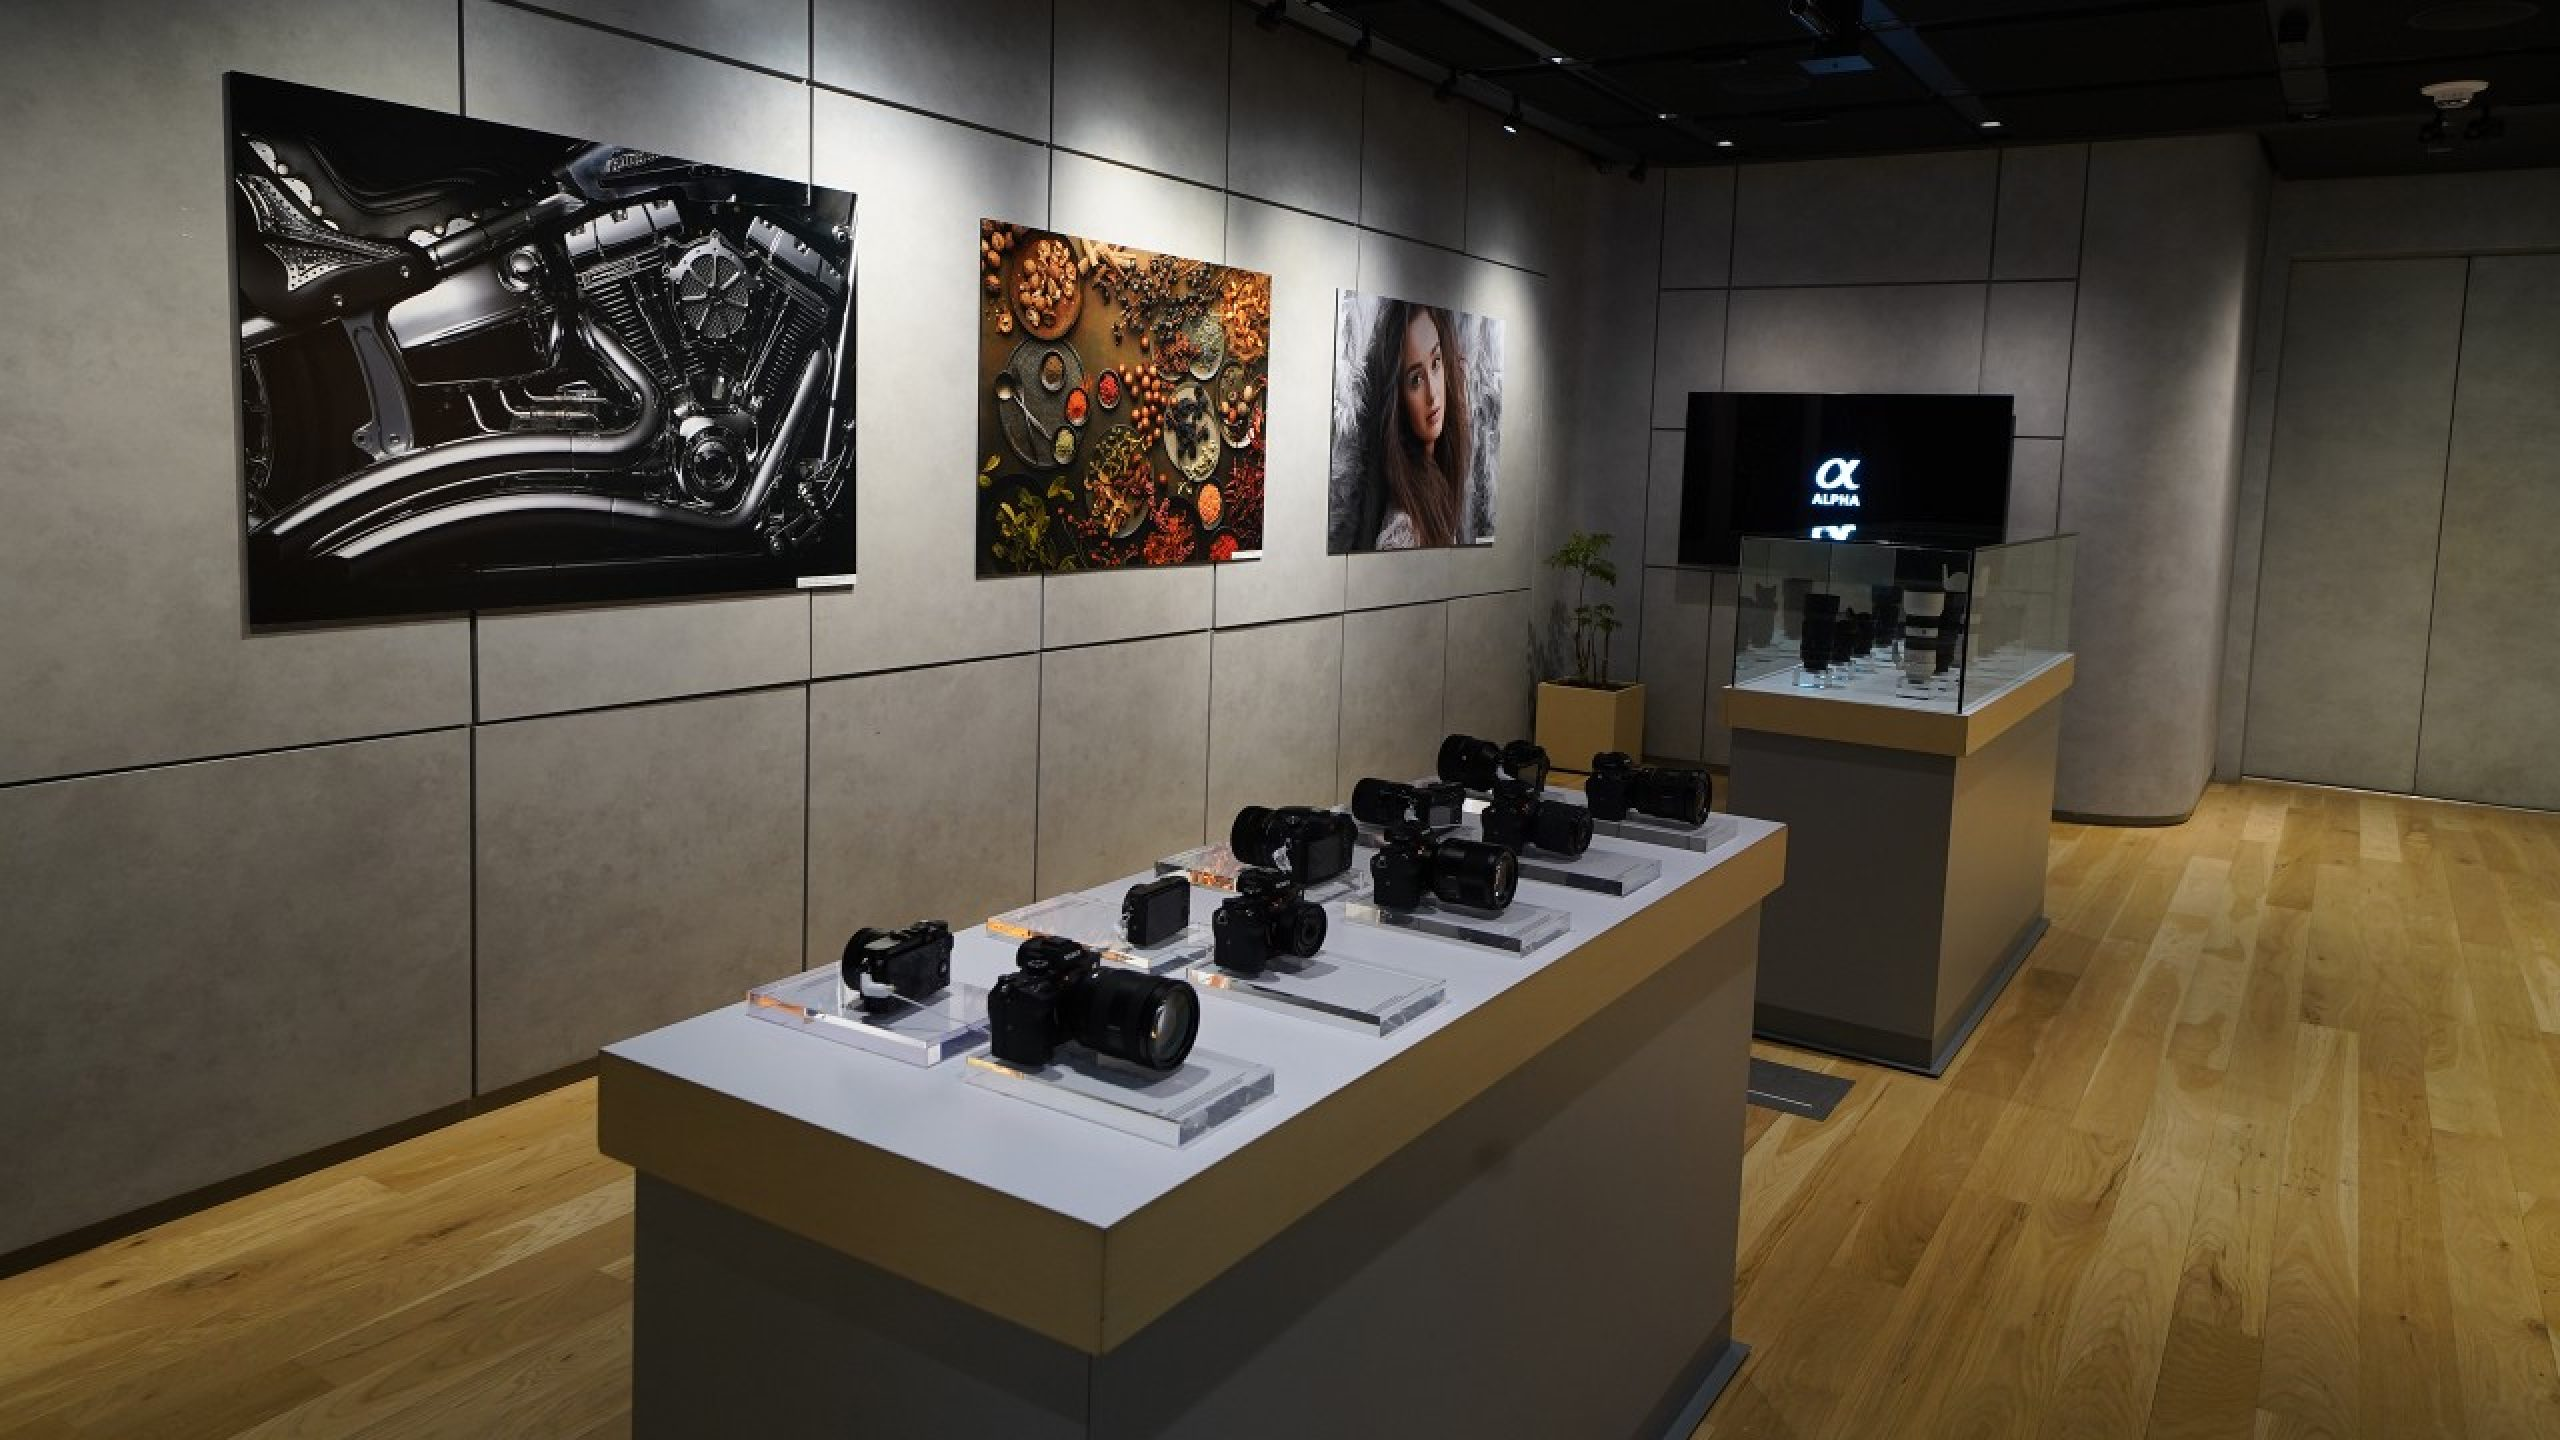 Sony Square NYC | Hands On Showroom for New & Innovative